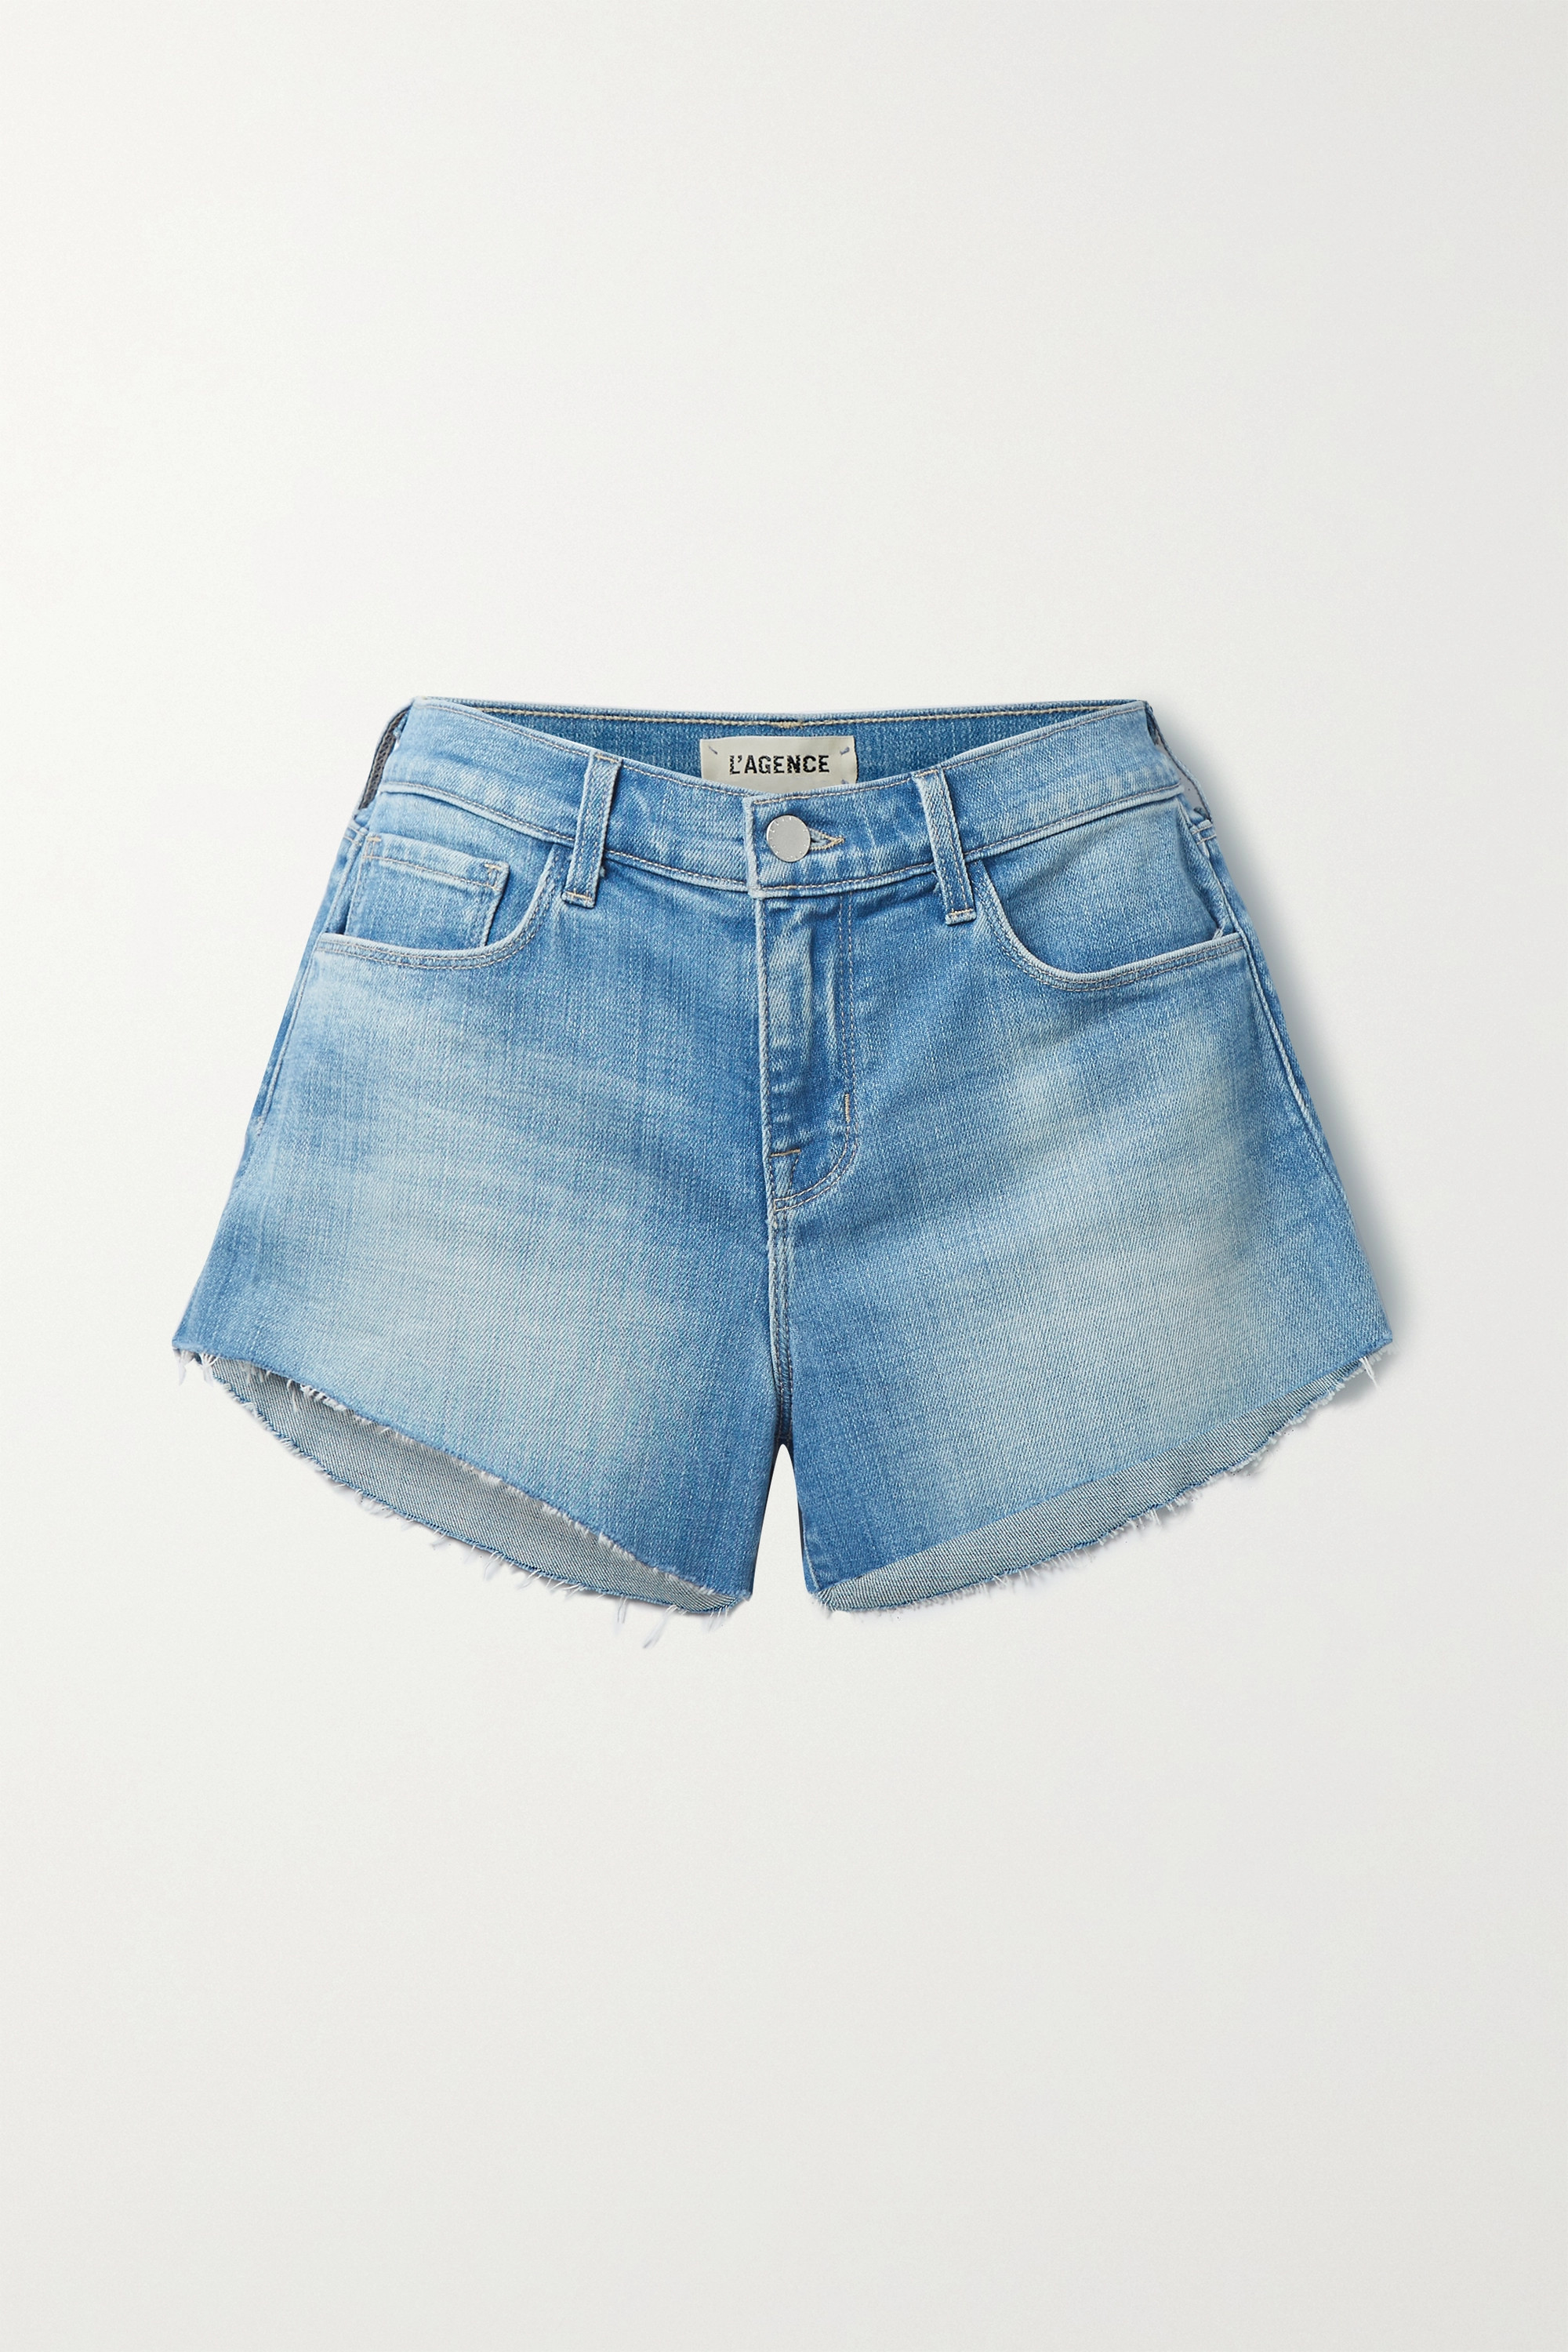 L'Agence - Audrey frayed denim shorts